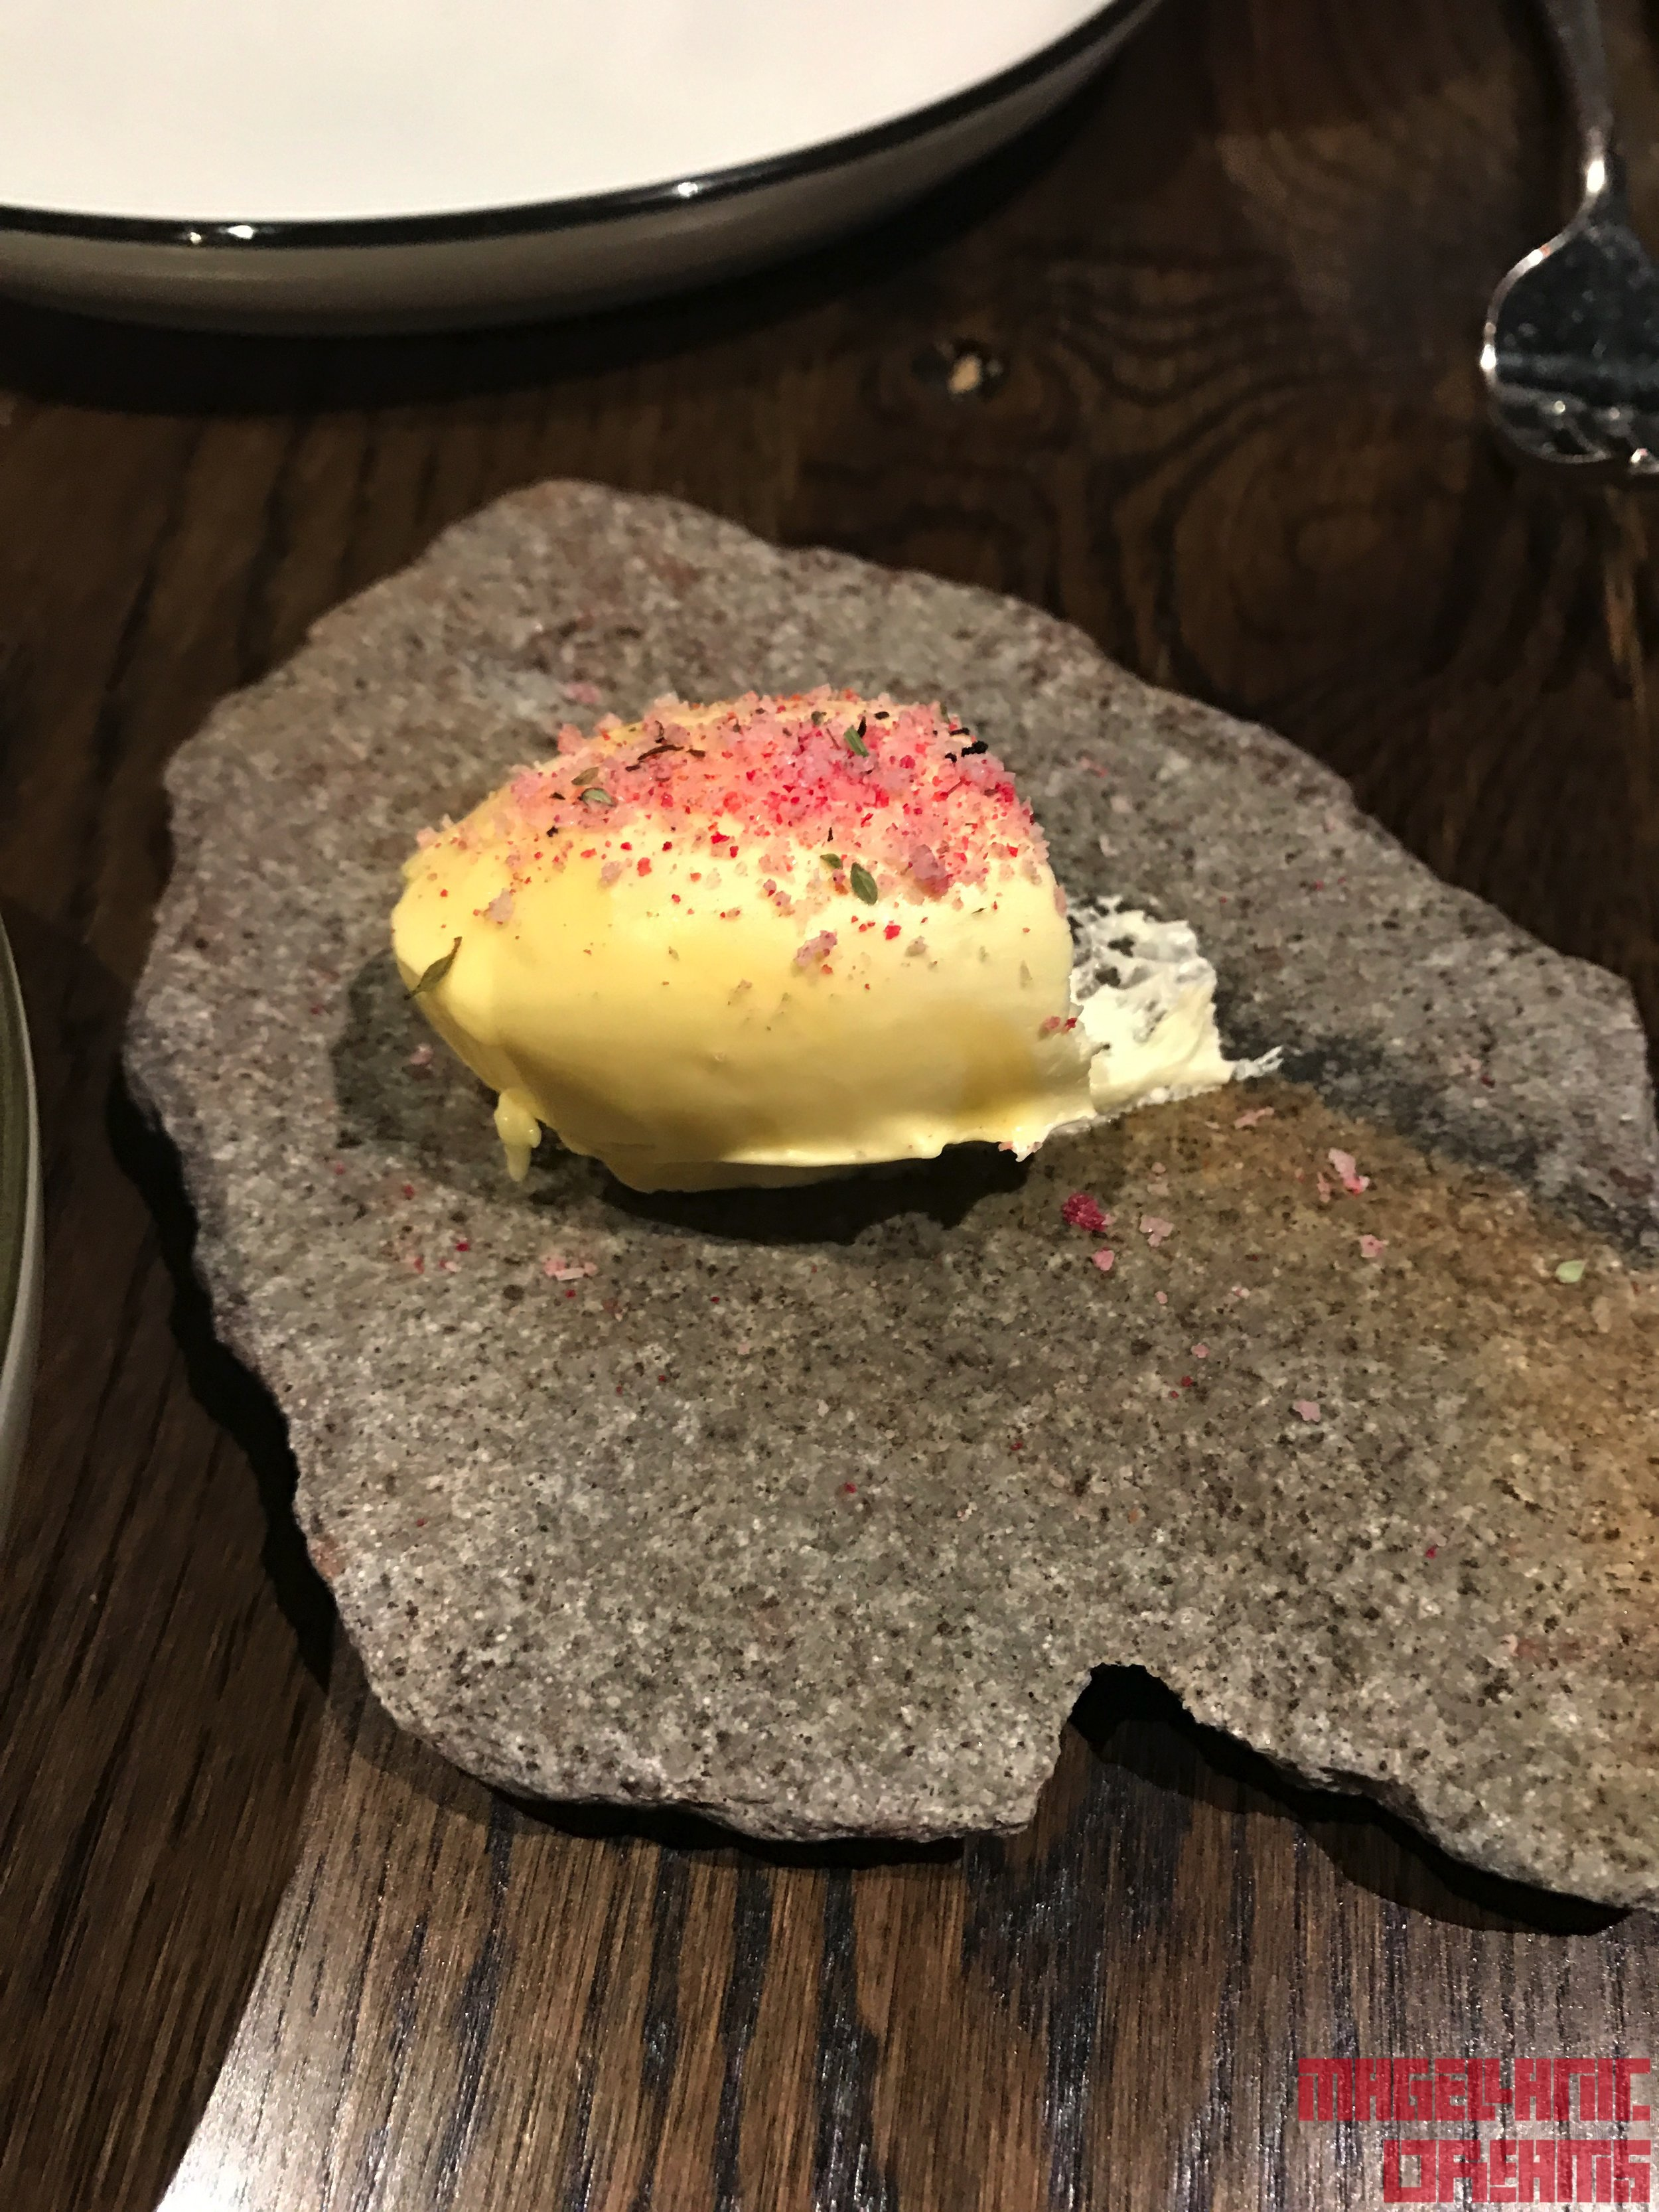 Butter with salt and spices - Haust Restaurant